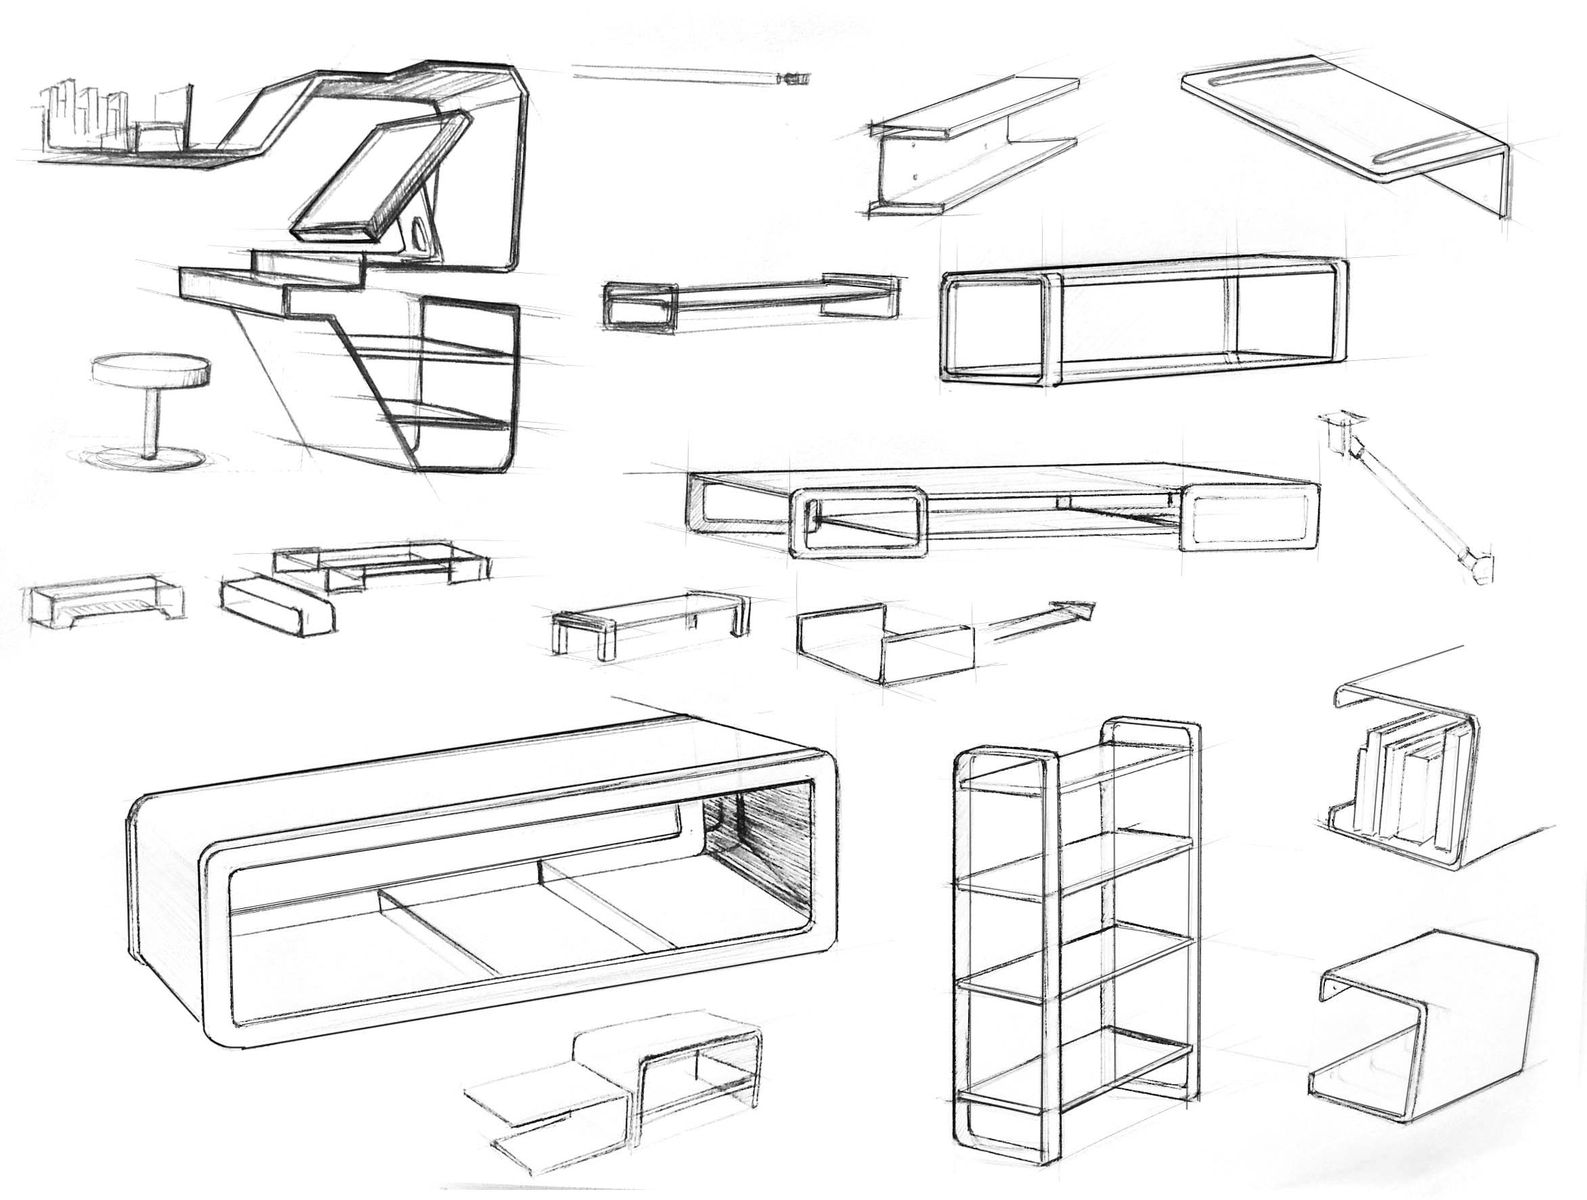 Furniture design sketches google search industrial for Multi generational product plan